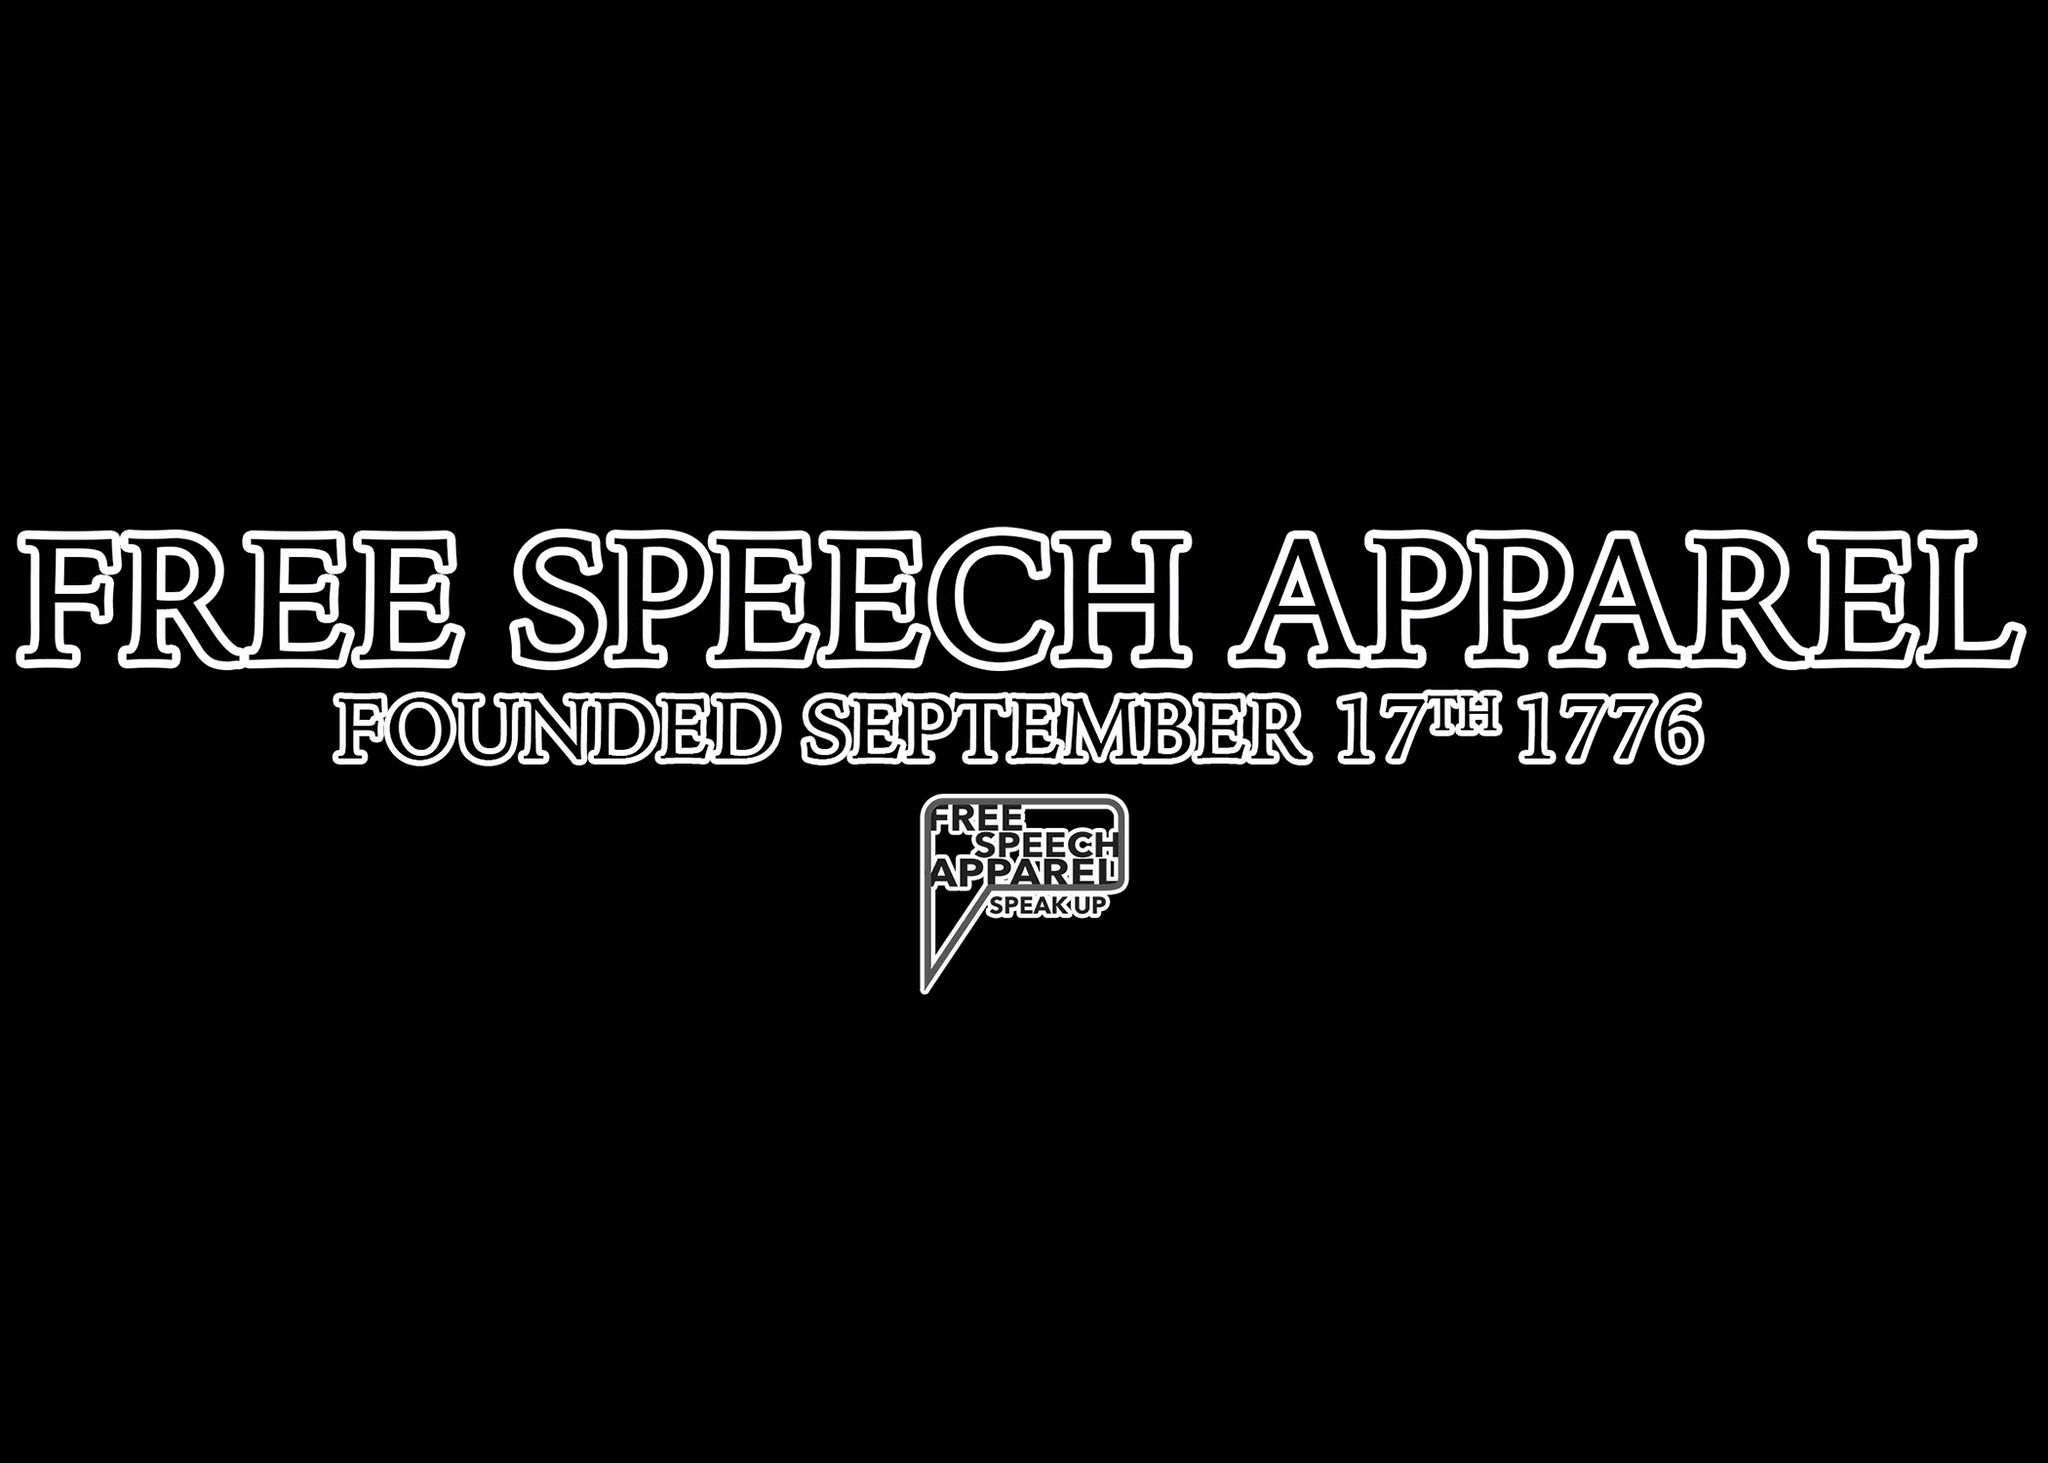 Free Speech Founded